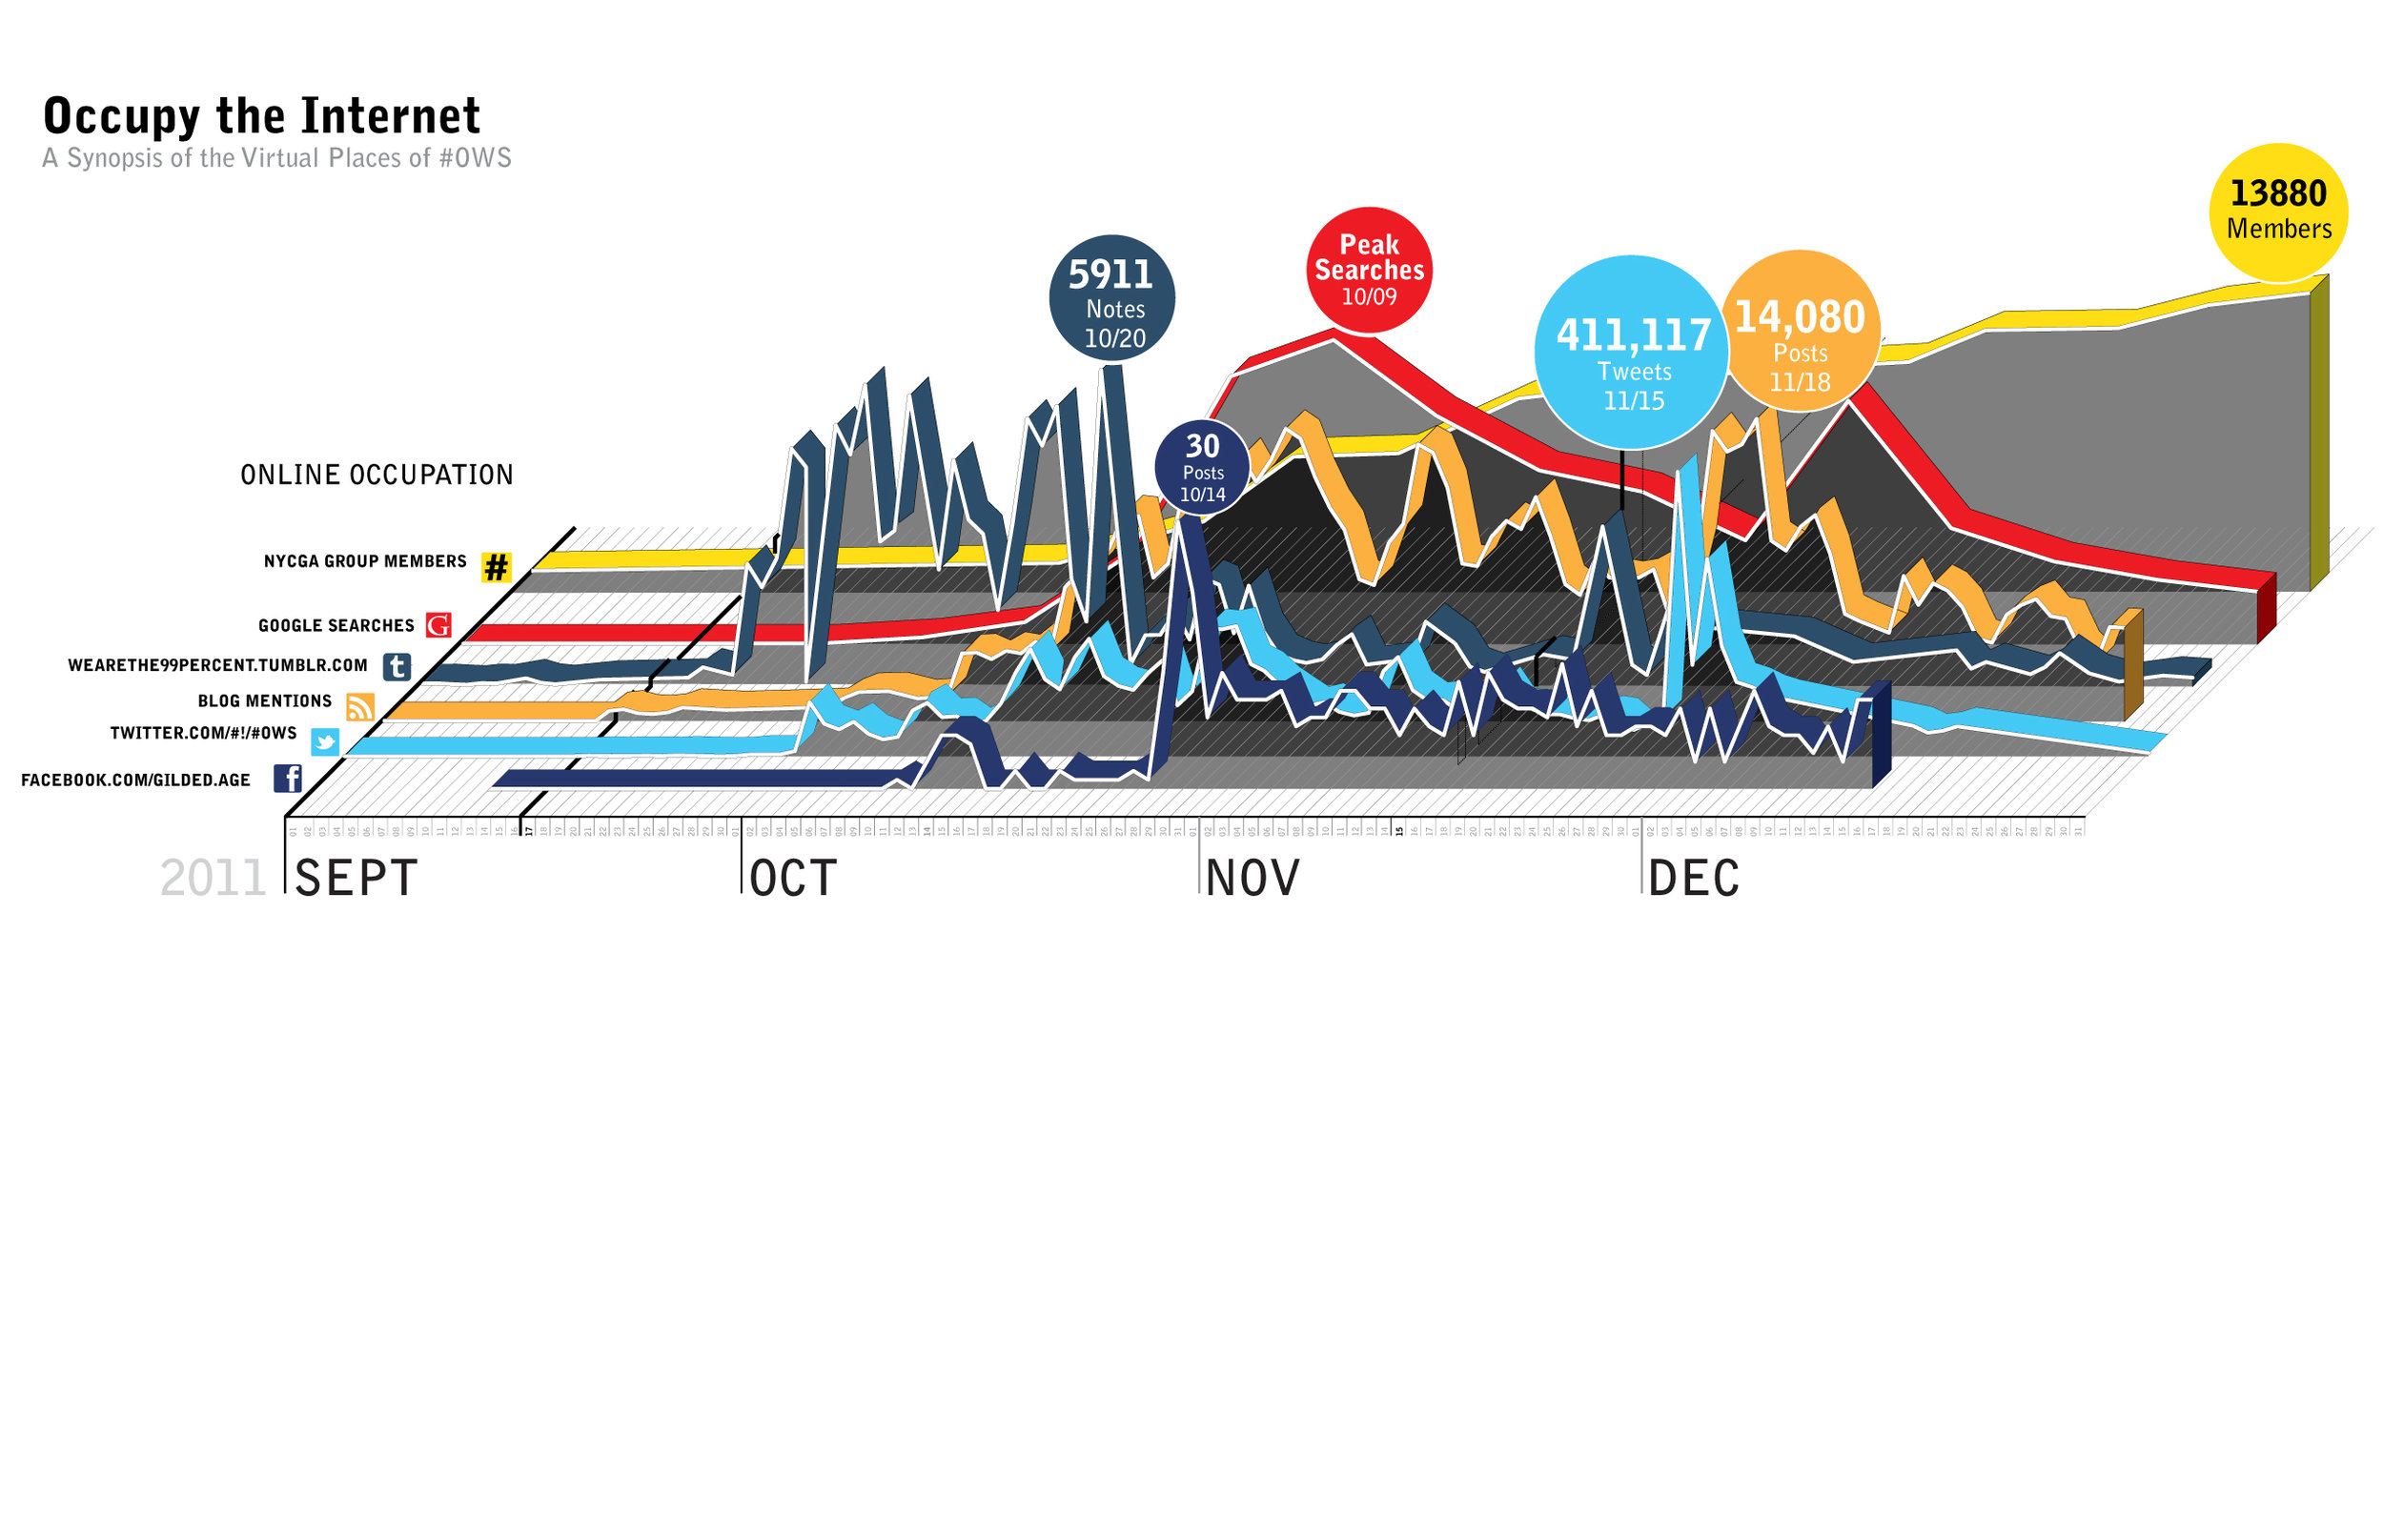 A timeline of the mentions across social media platforms during the Occupy Wall Street Movement.